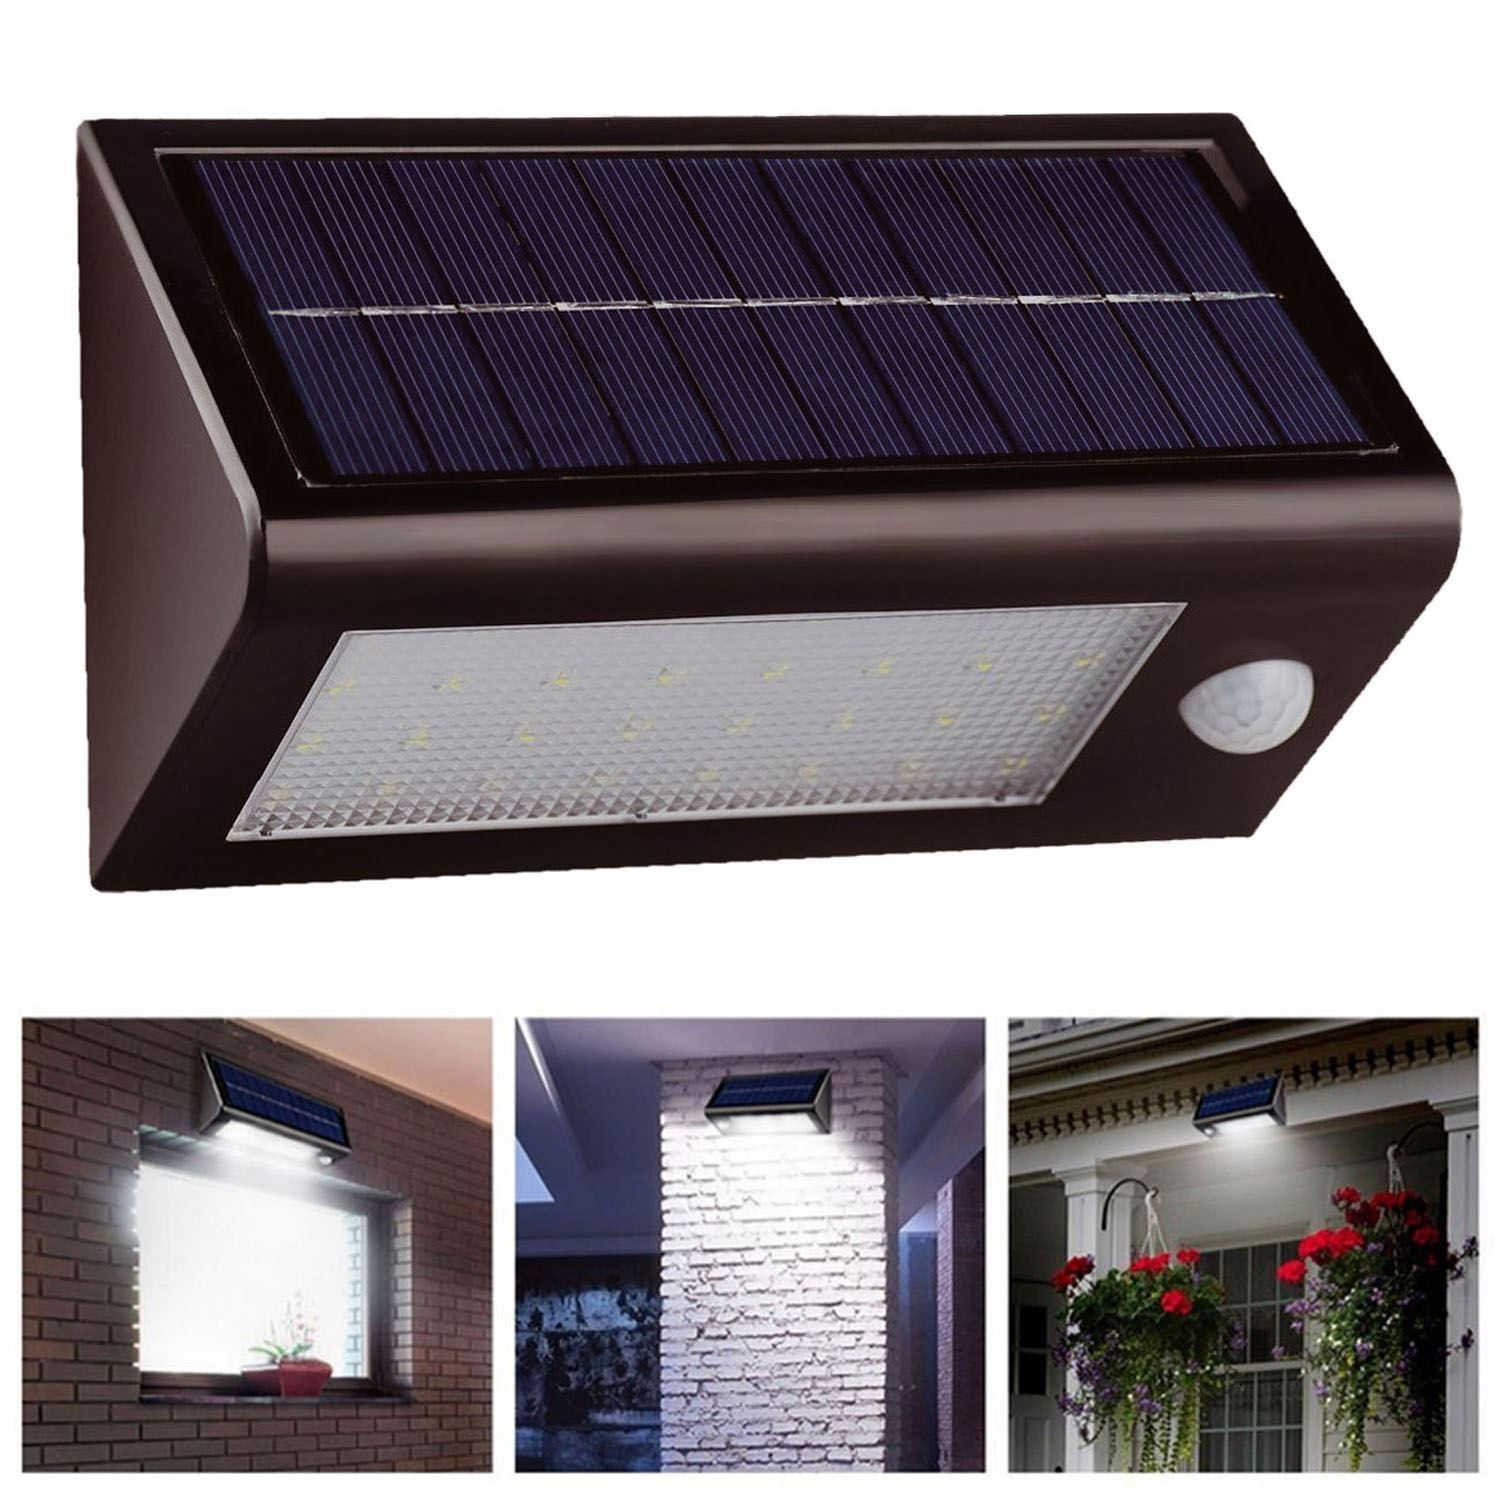 Solar Pir Motion Sensor Security Floodlight Shed Lamp